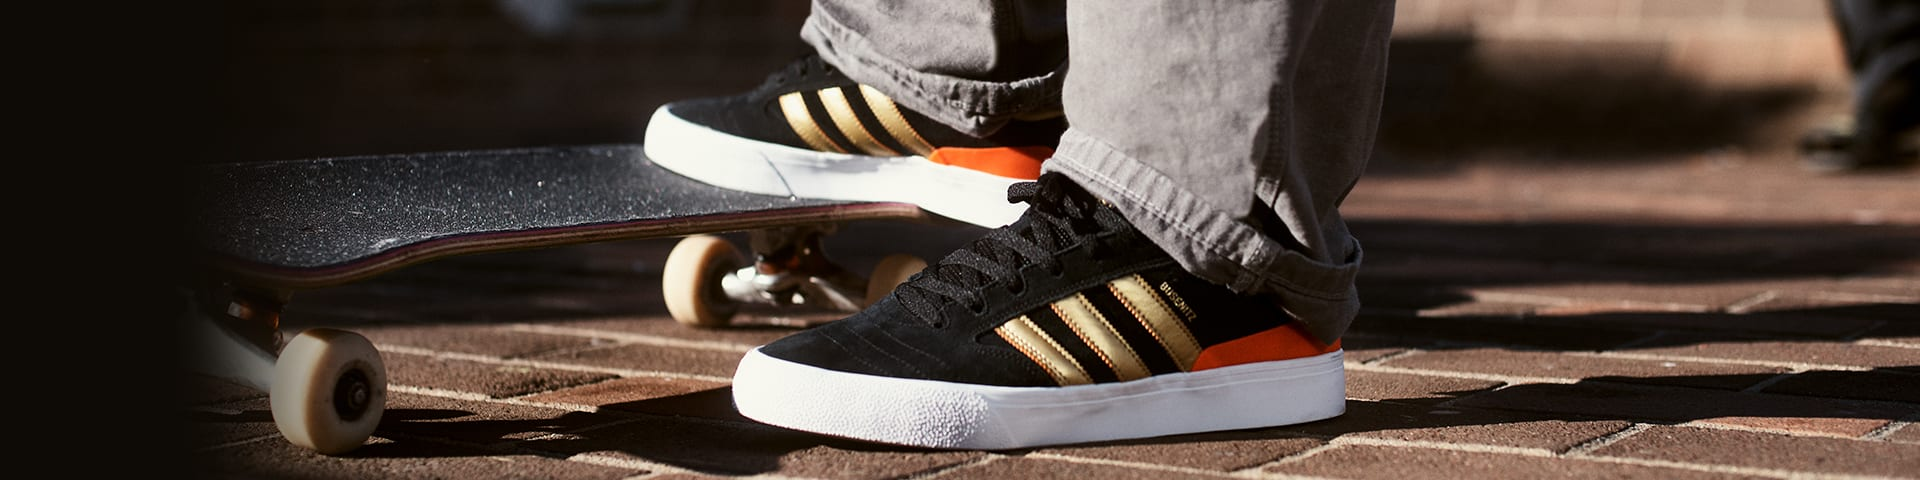 Are ADIDAS good skate shoes?